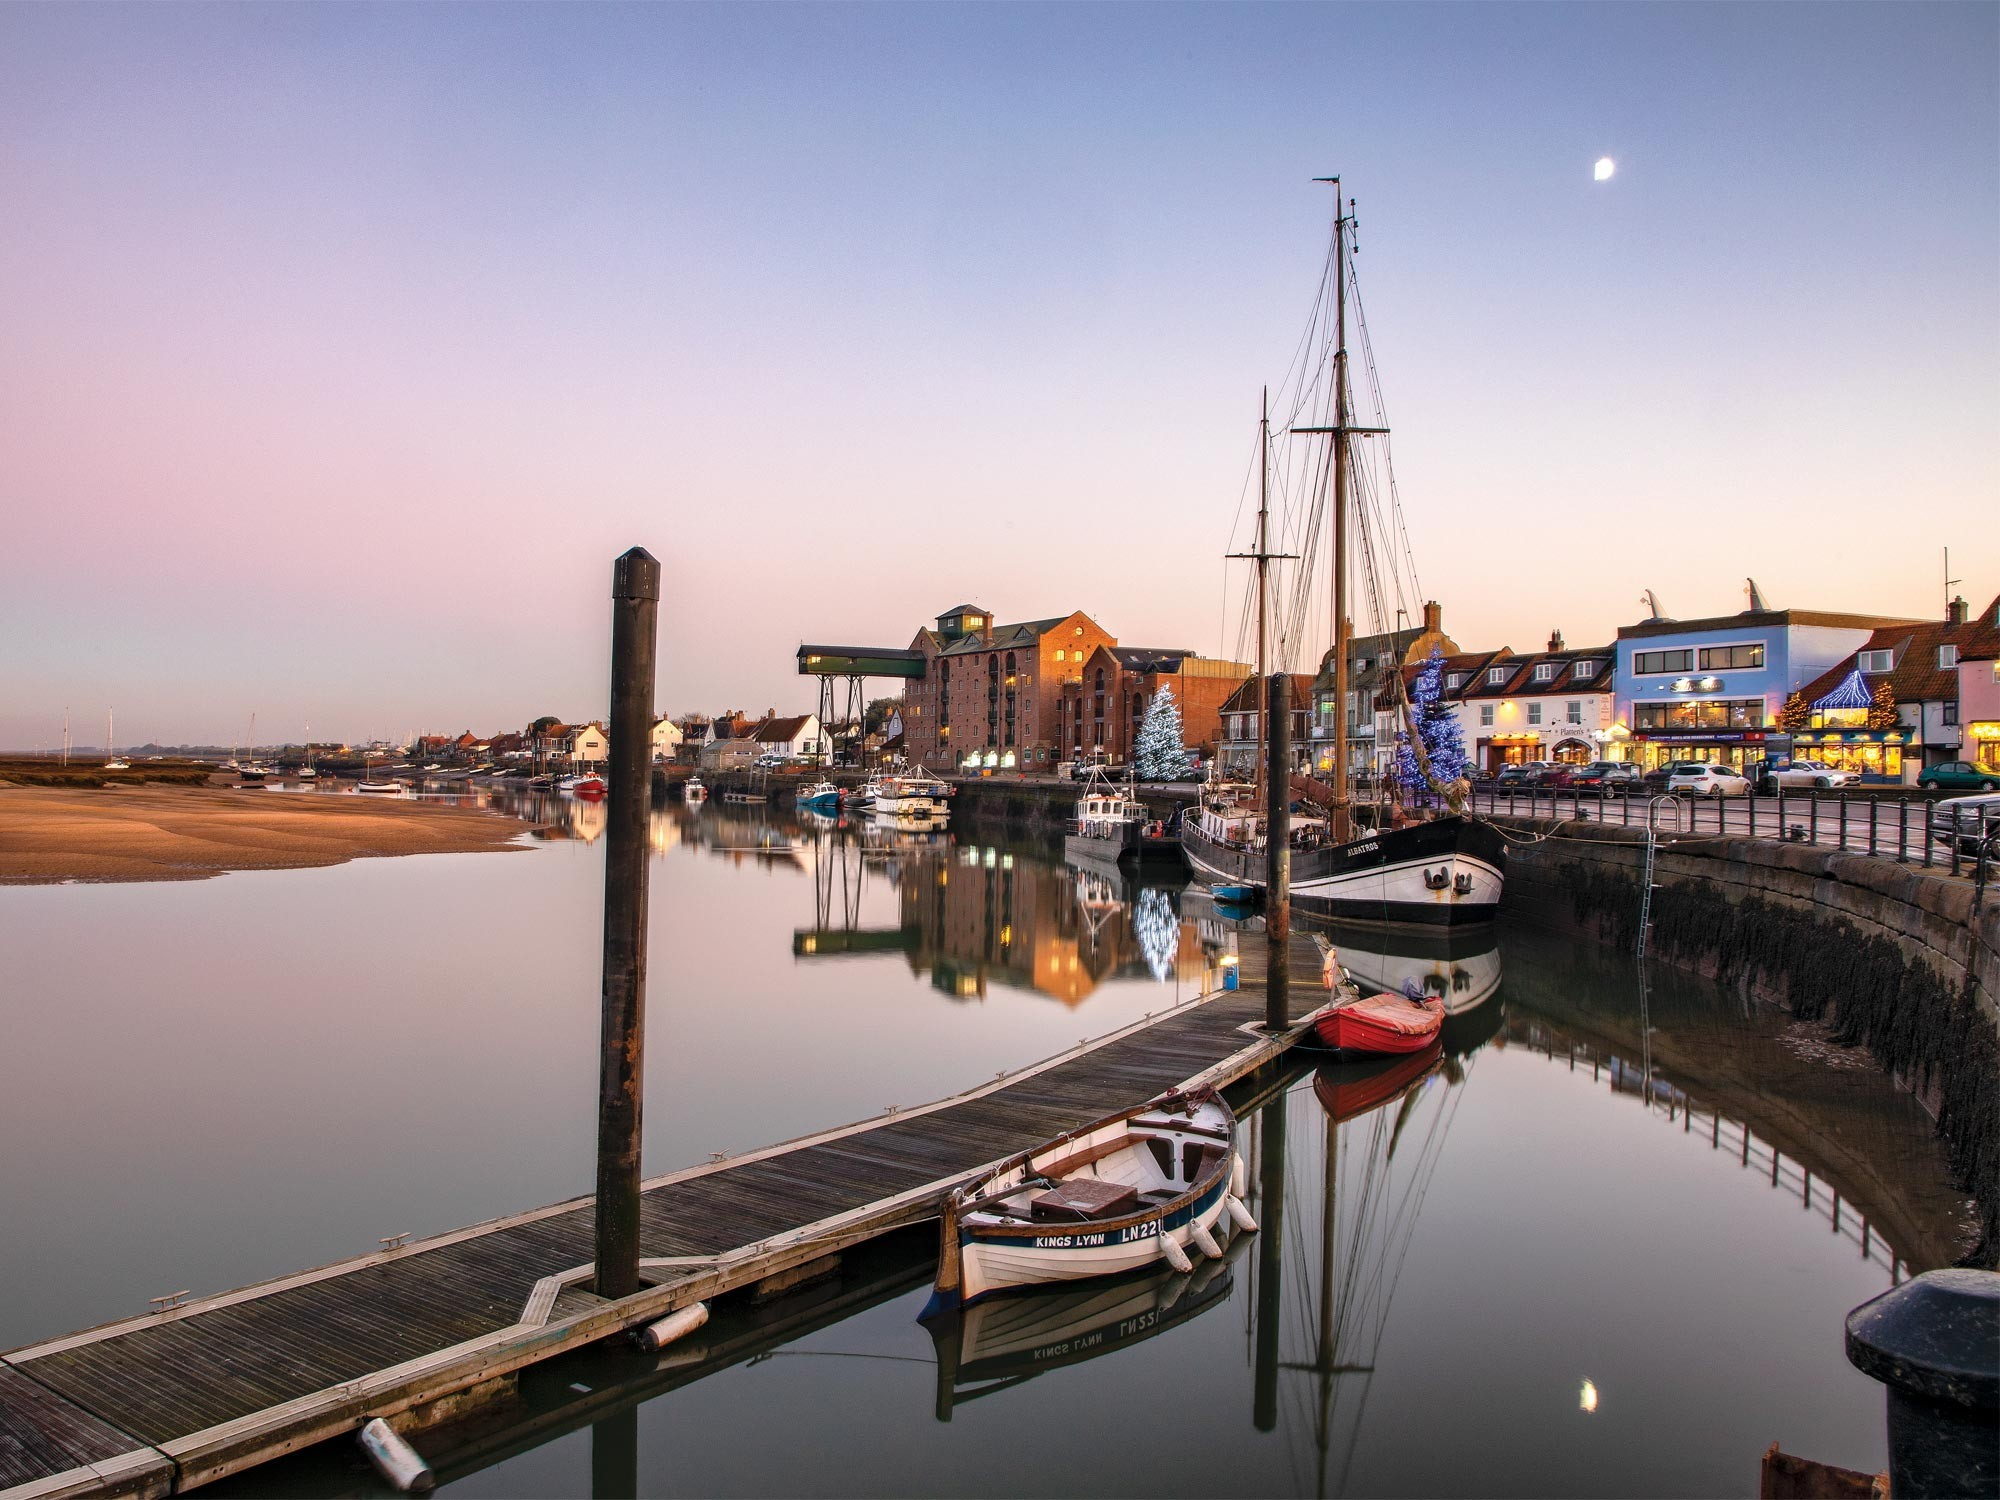 Wells-next-the-sea harbour at Christmas